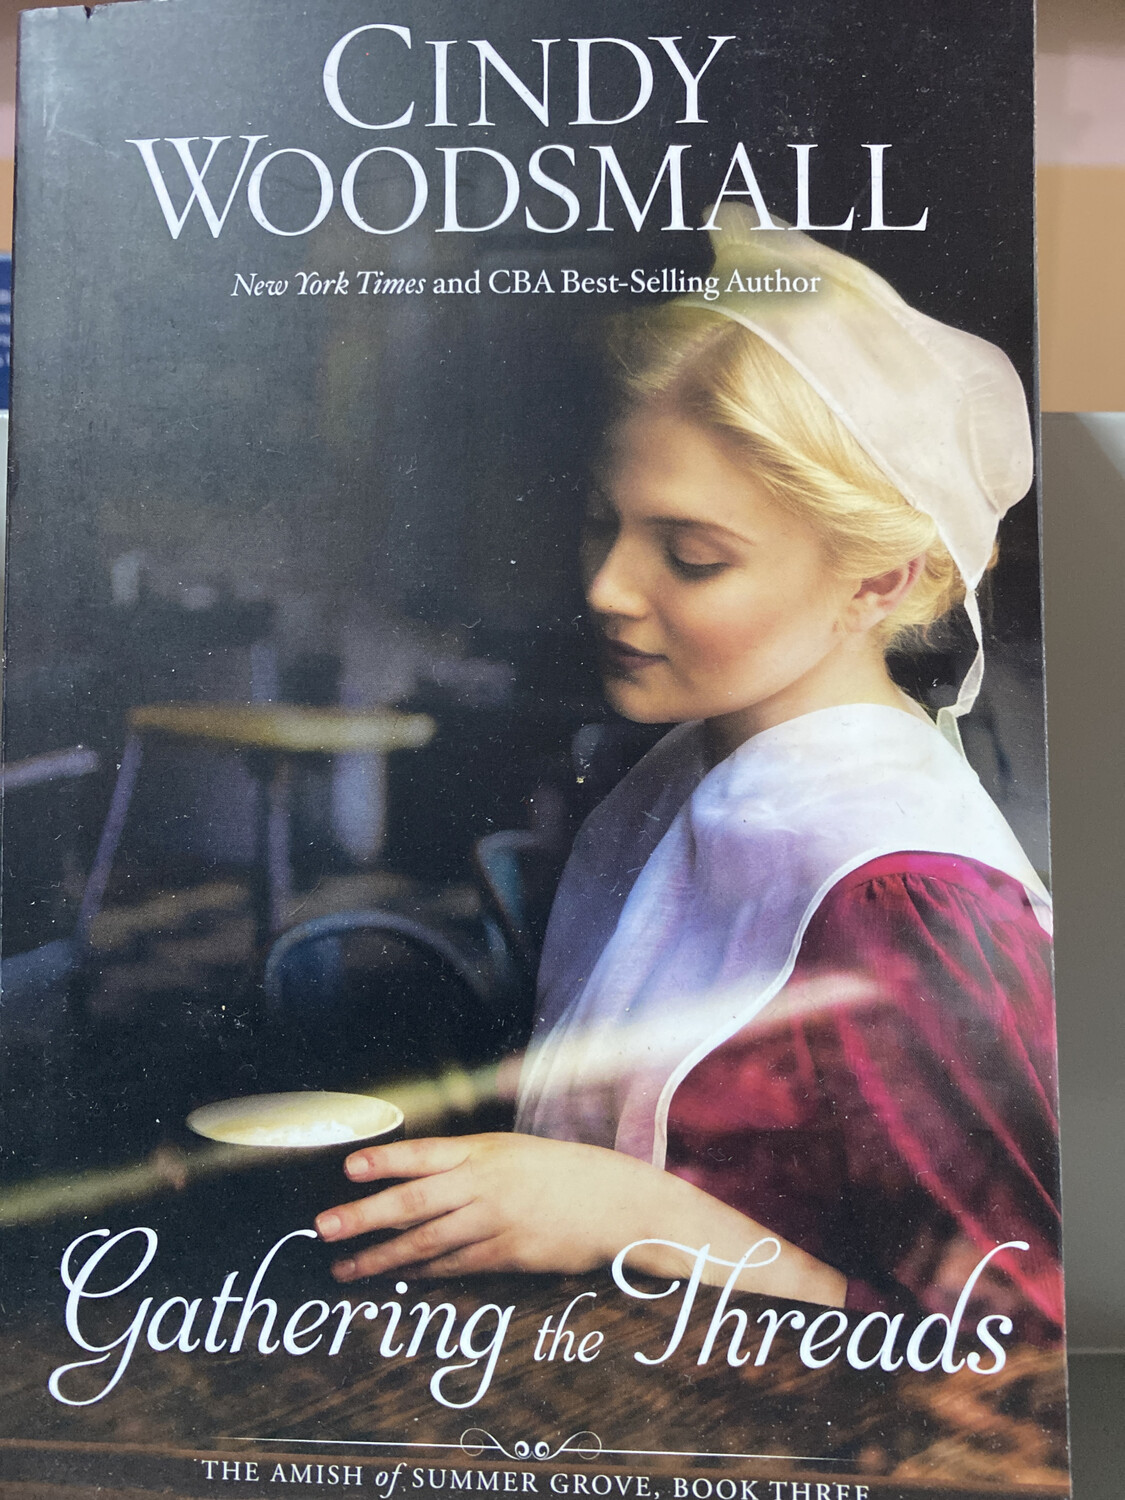 WOODSMALL, Gathering The Threads